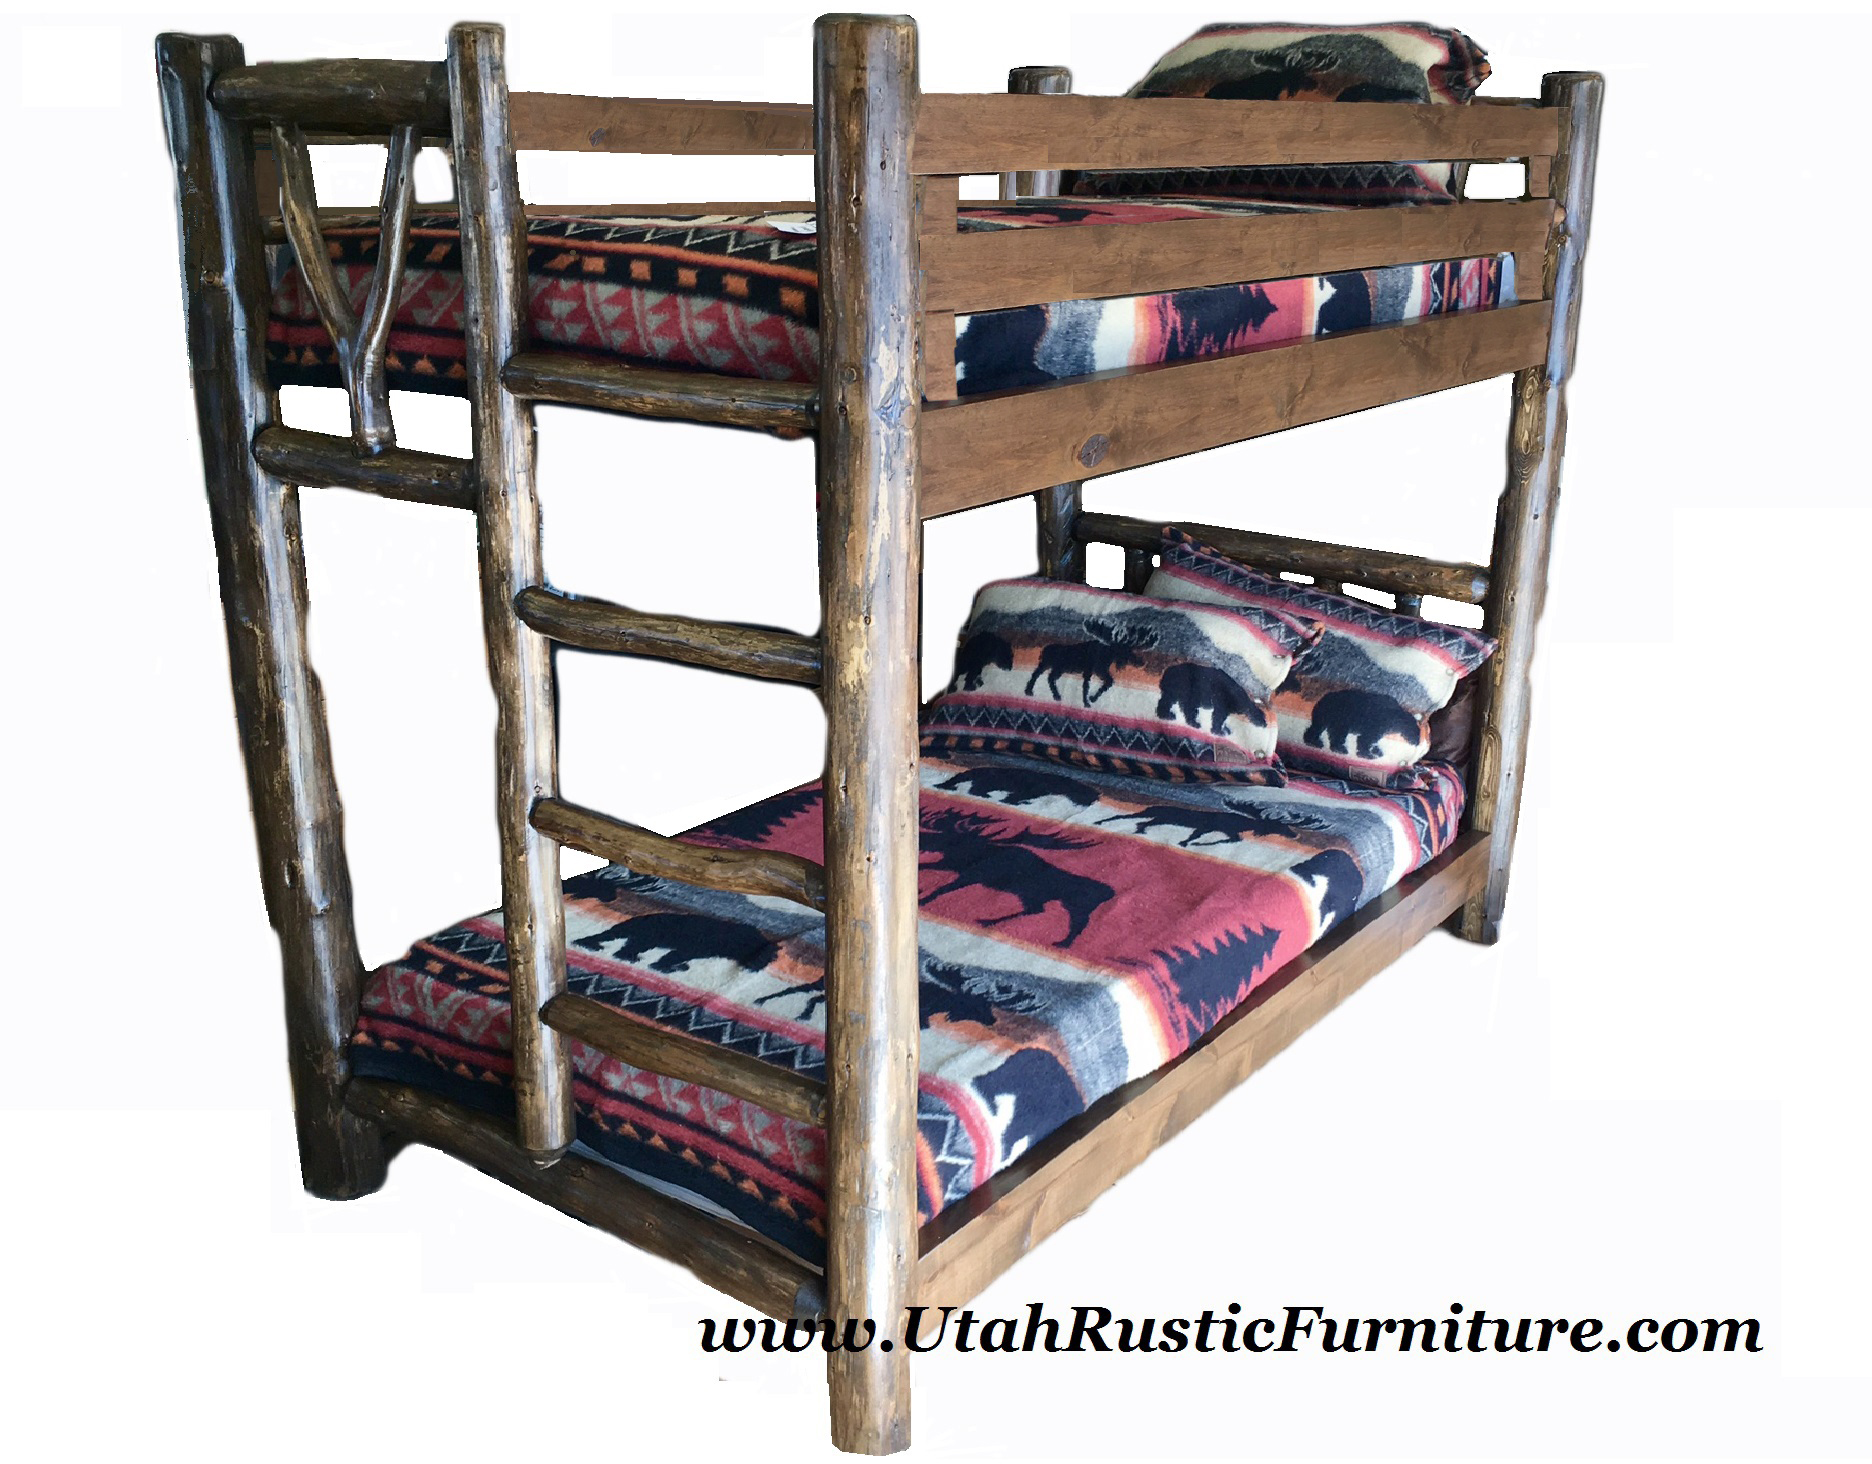 black white reclaimed recycled size and door homedesignlatest beds furniture shelving site san canopy diy with built rustic headboards full mexico ana custom california austin log of headboard storage wood mexican projects king frame lights anto queen bedroom tx barnwood sets in